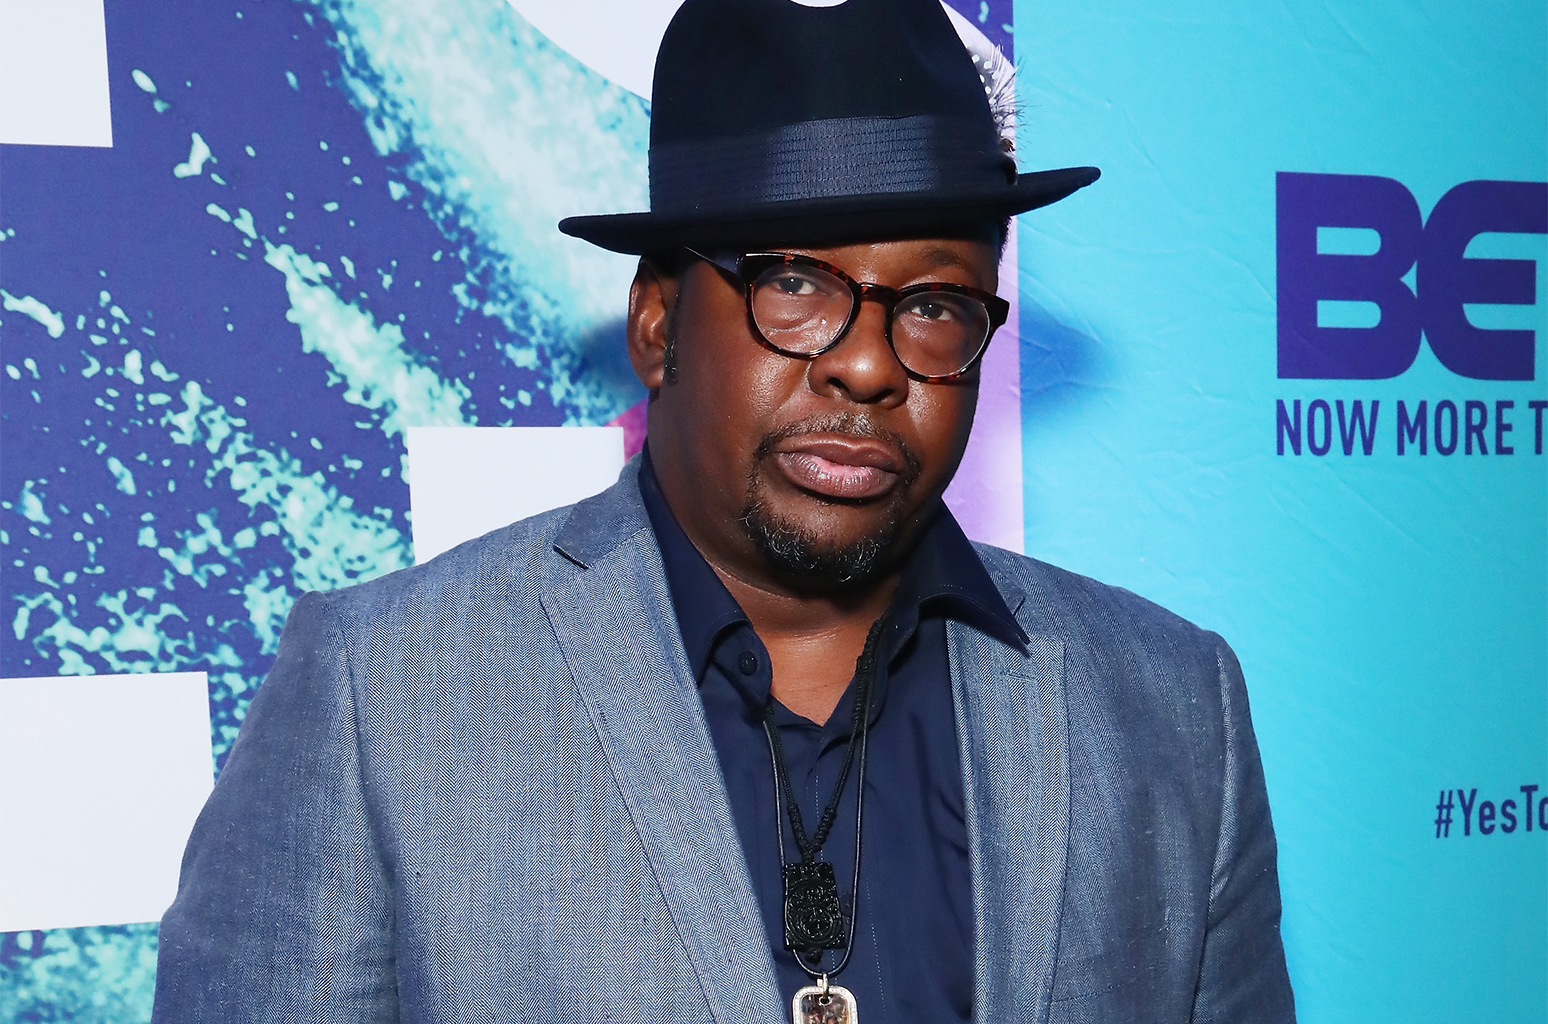 Bobby Brown to Help Build Domestic Violence Shelter in Honor of Late Daughter Bobbi Kristina